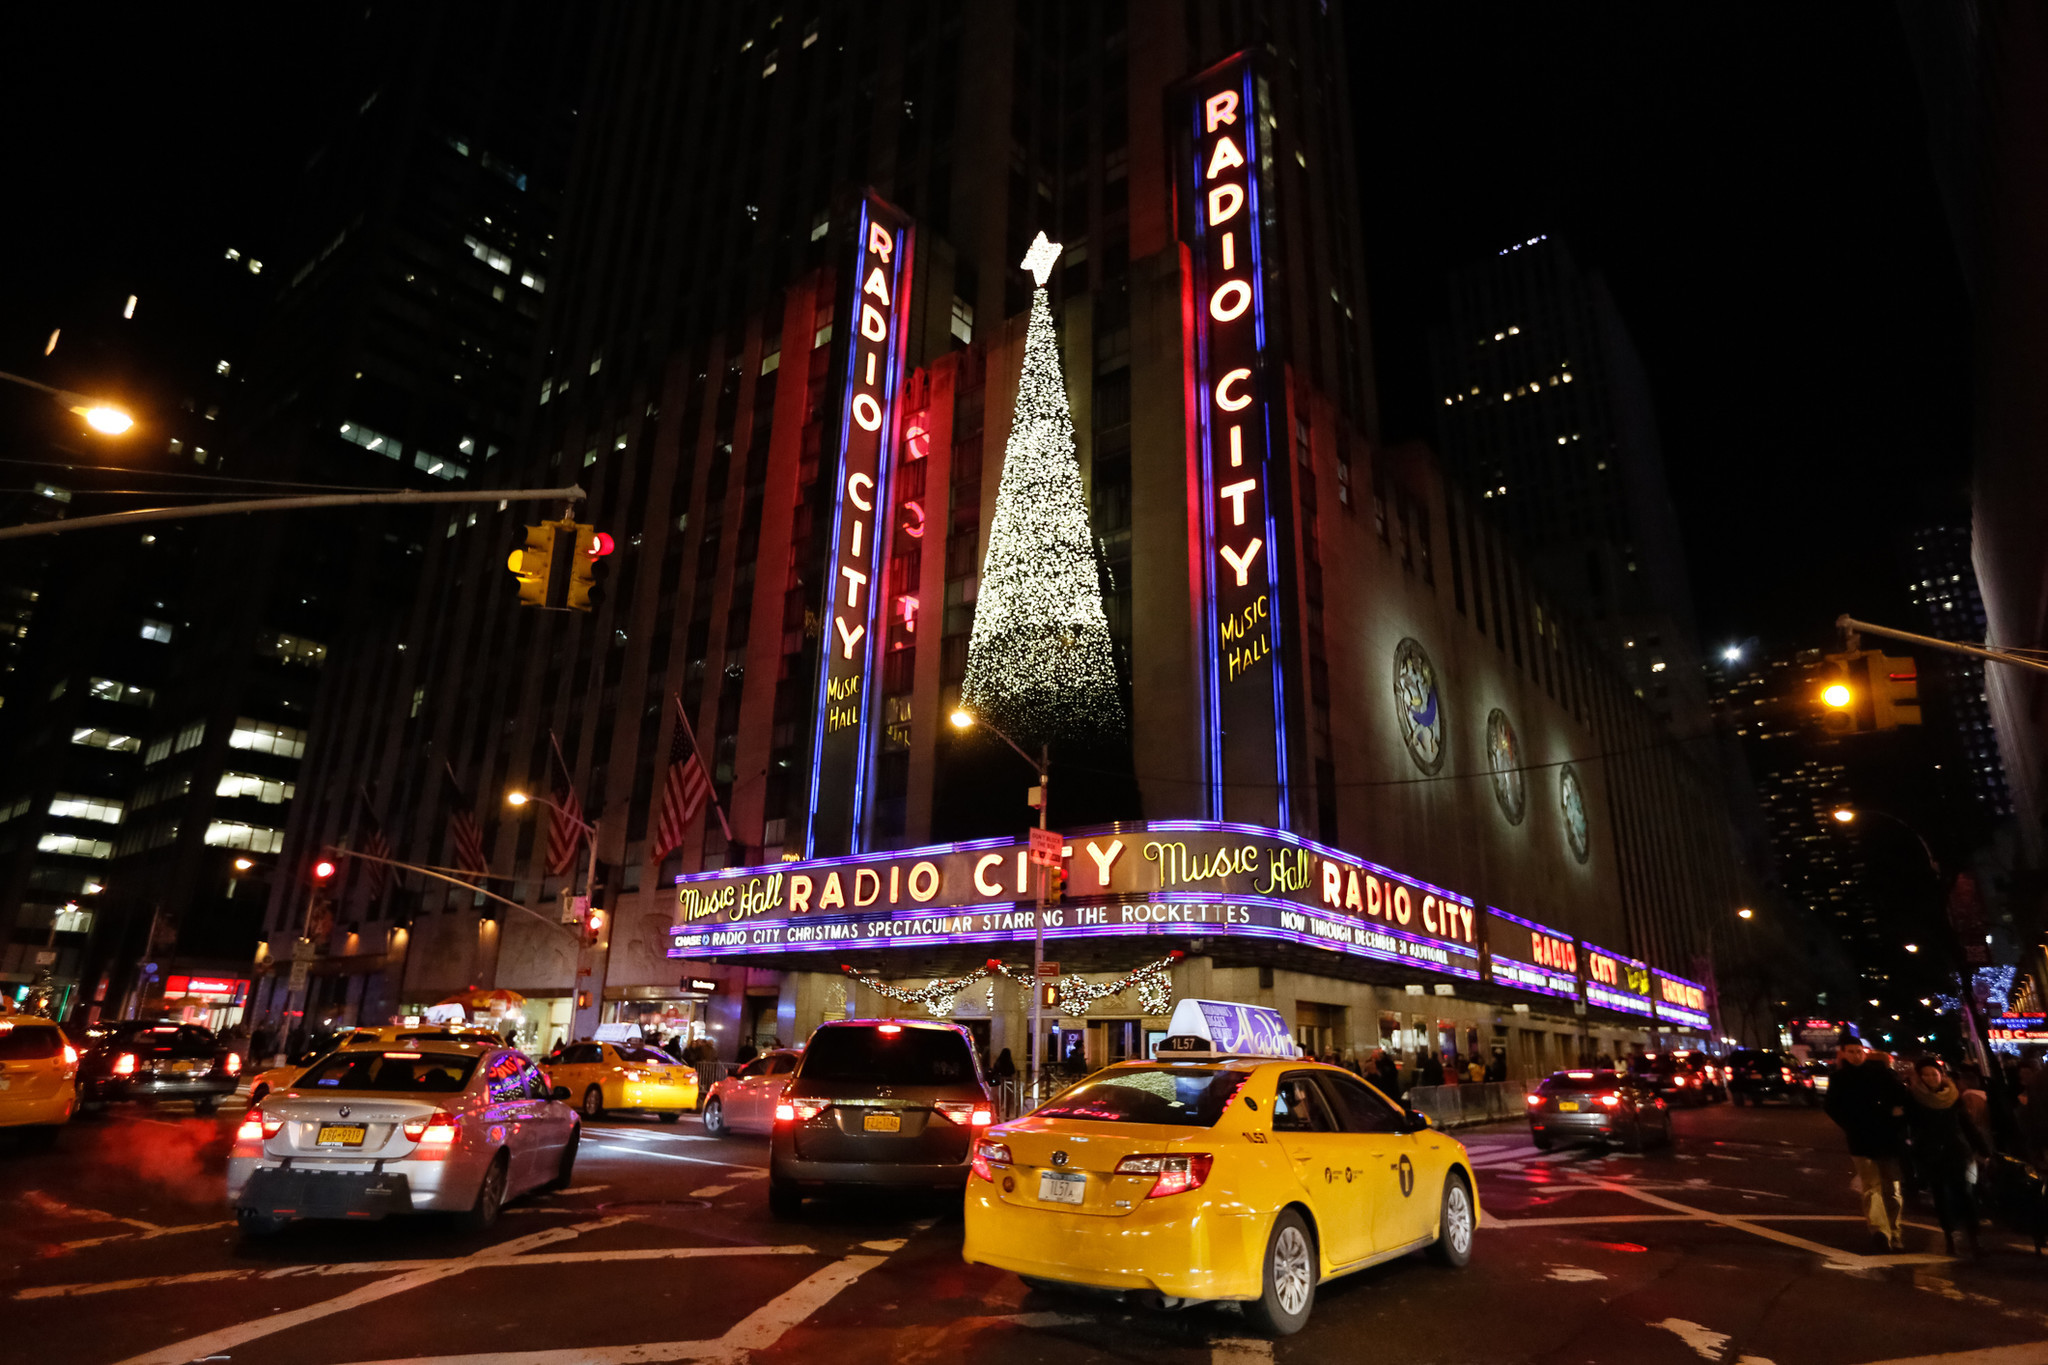 GRIDLOCK SAM: Pedestrians, car traffic and Rockettes at Radio City